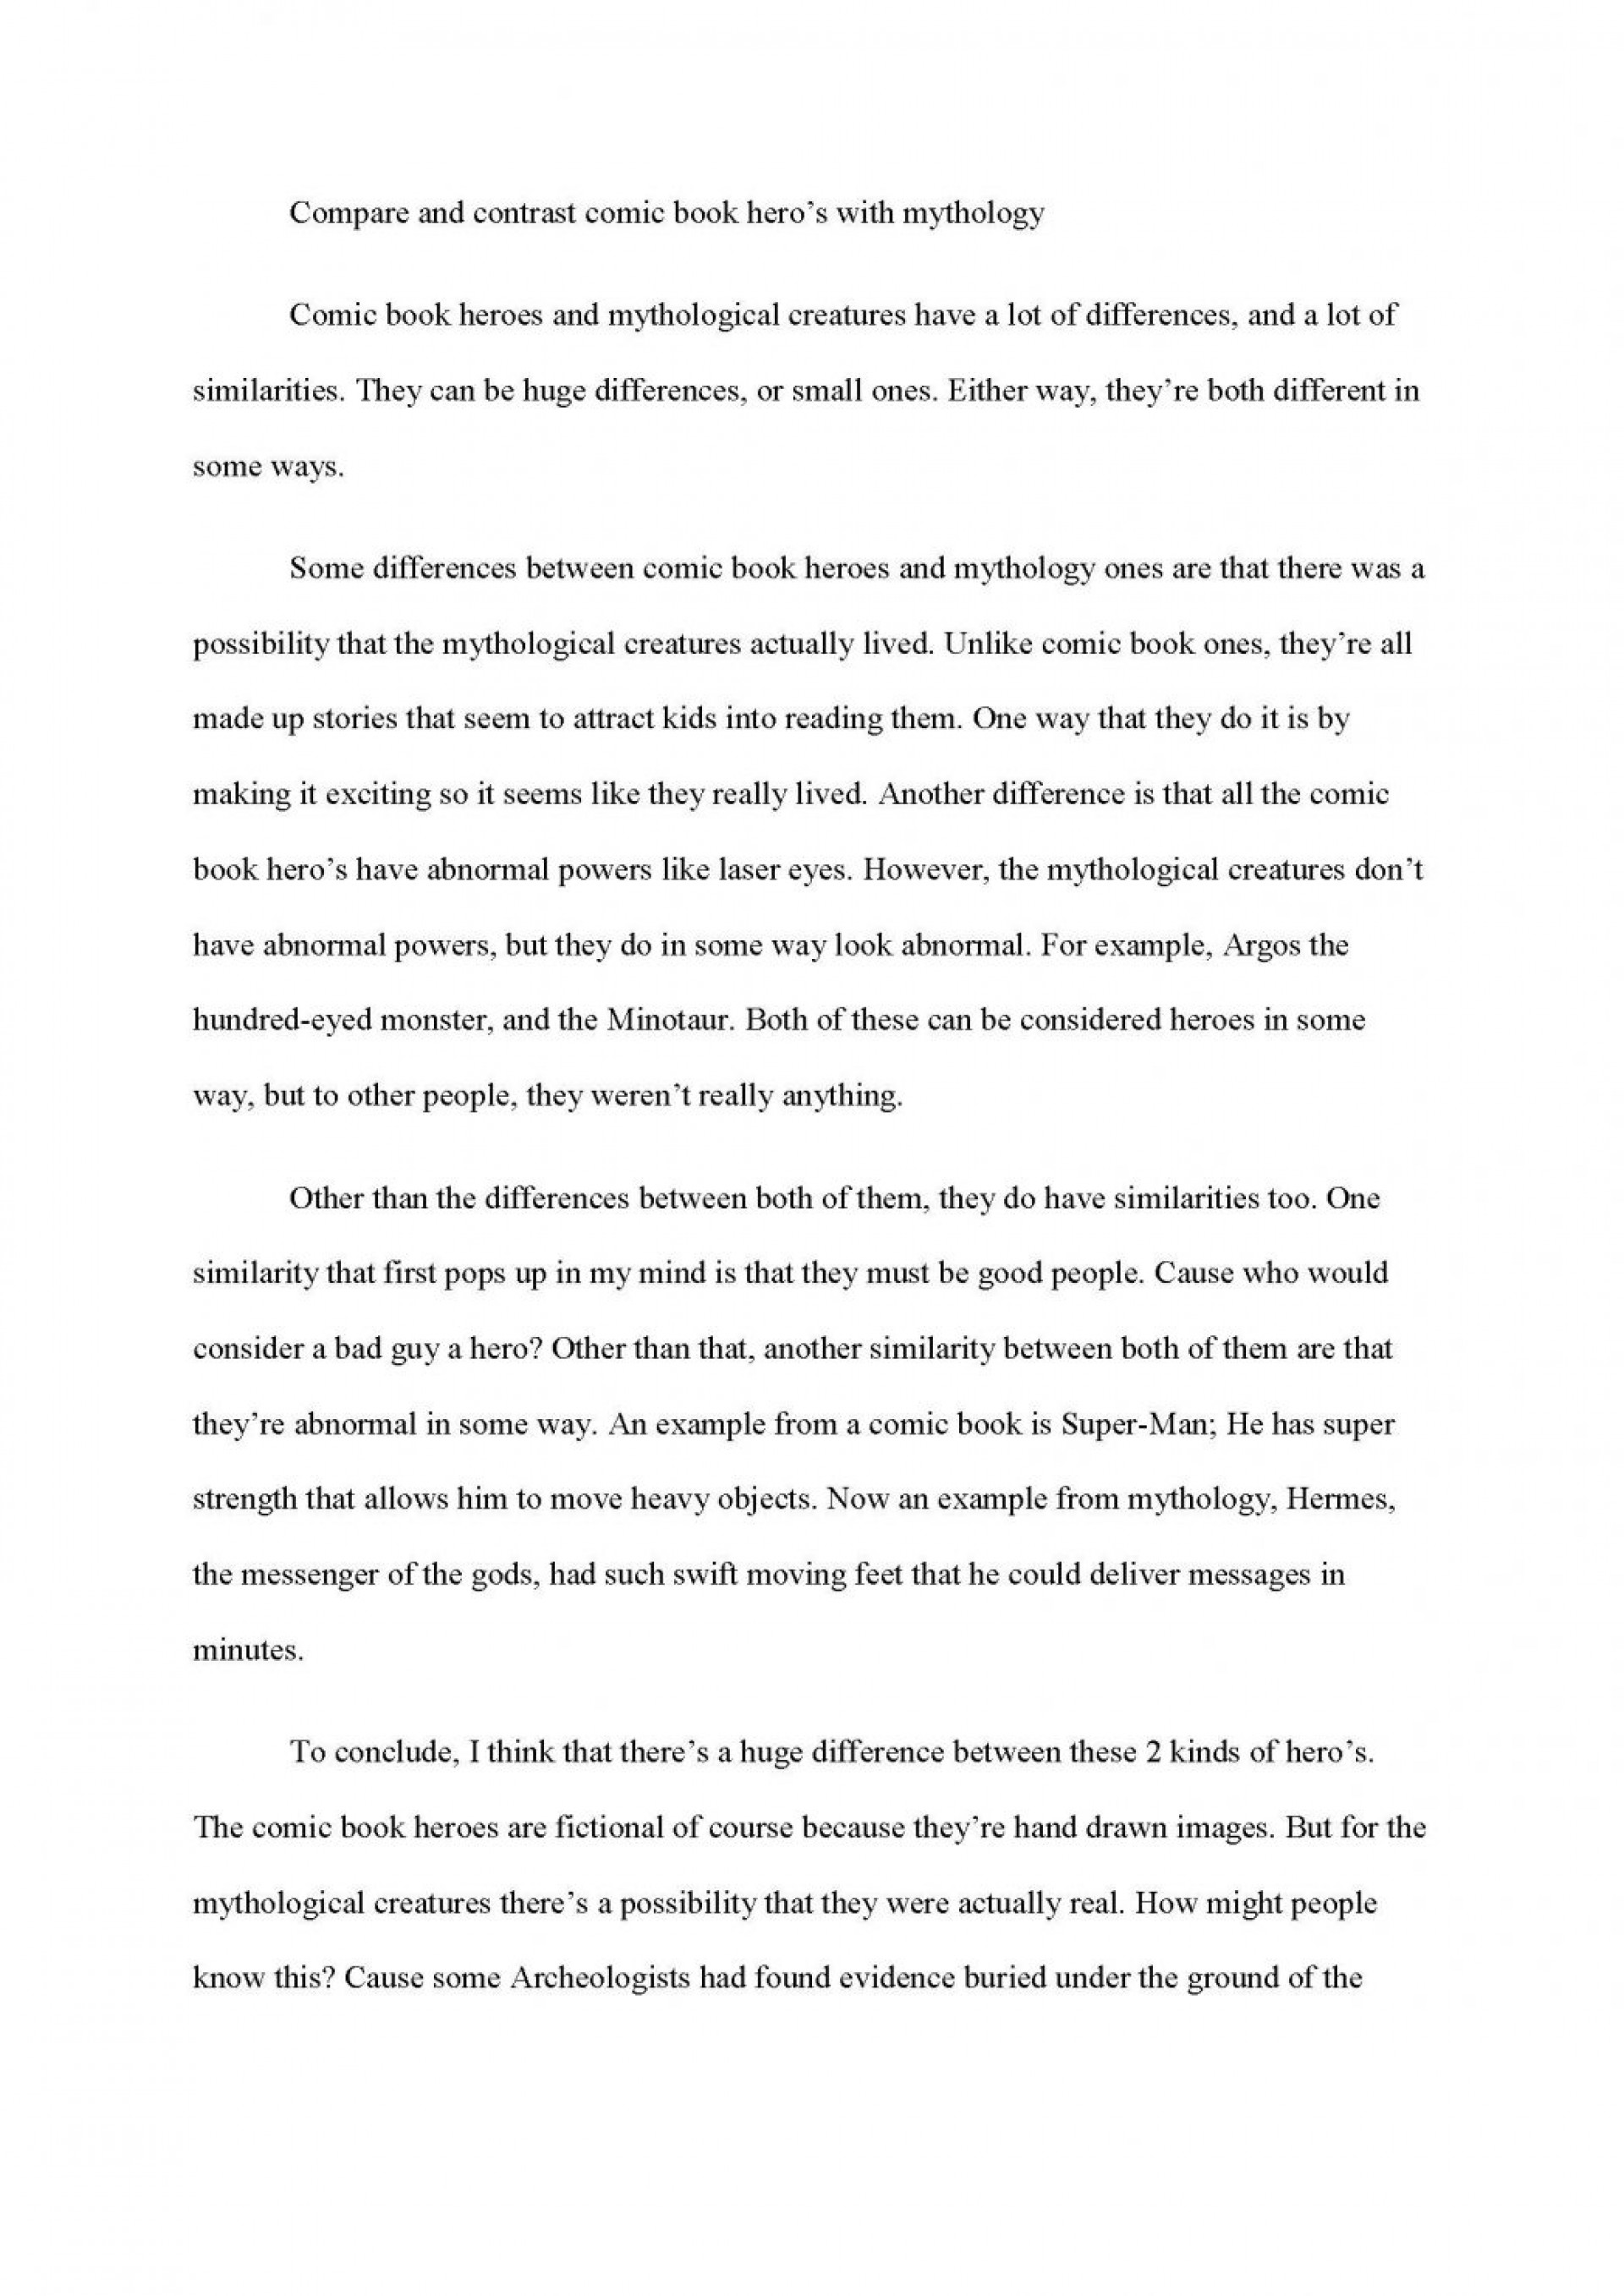 008 Compare Contrast Essay Examples High Schoolnd Middle S 4th Grade Food Vs College 6th 3rd 5th Block Format Pdf 1048x1482 Example What Is Striking A And Does Comparison/contrast Look Like Should Provide Good Topic Sentence For 1920